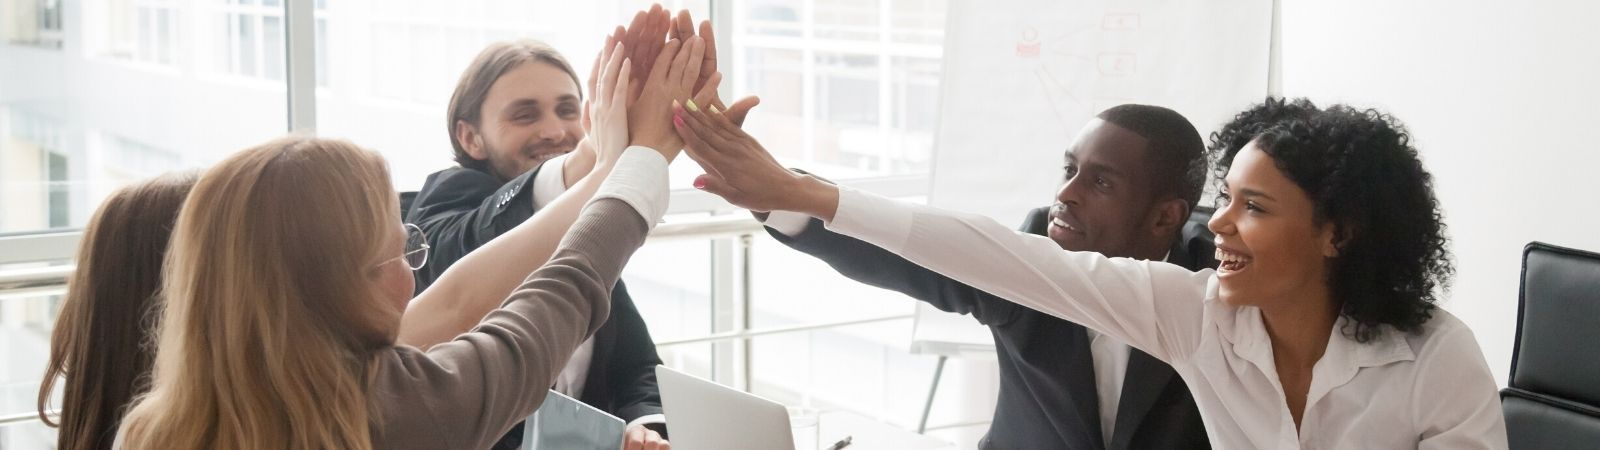 Happy business meeting with five smiling, diverse professionals high-fiving signifying collaboration.